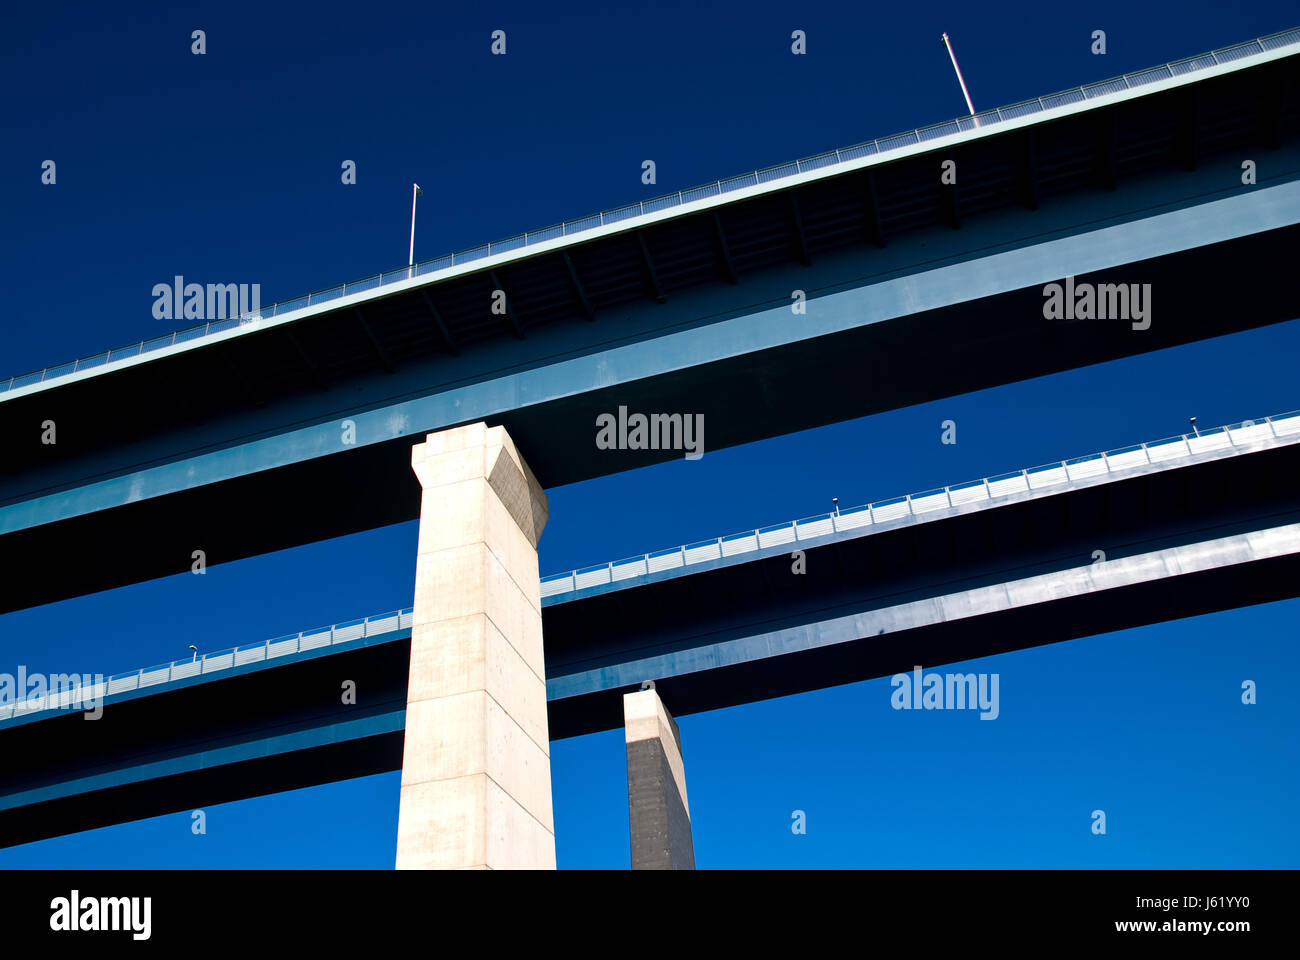 blue traffic transportation bridge blue industry traffic transportation bridge Stock Photo